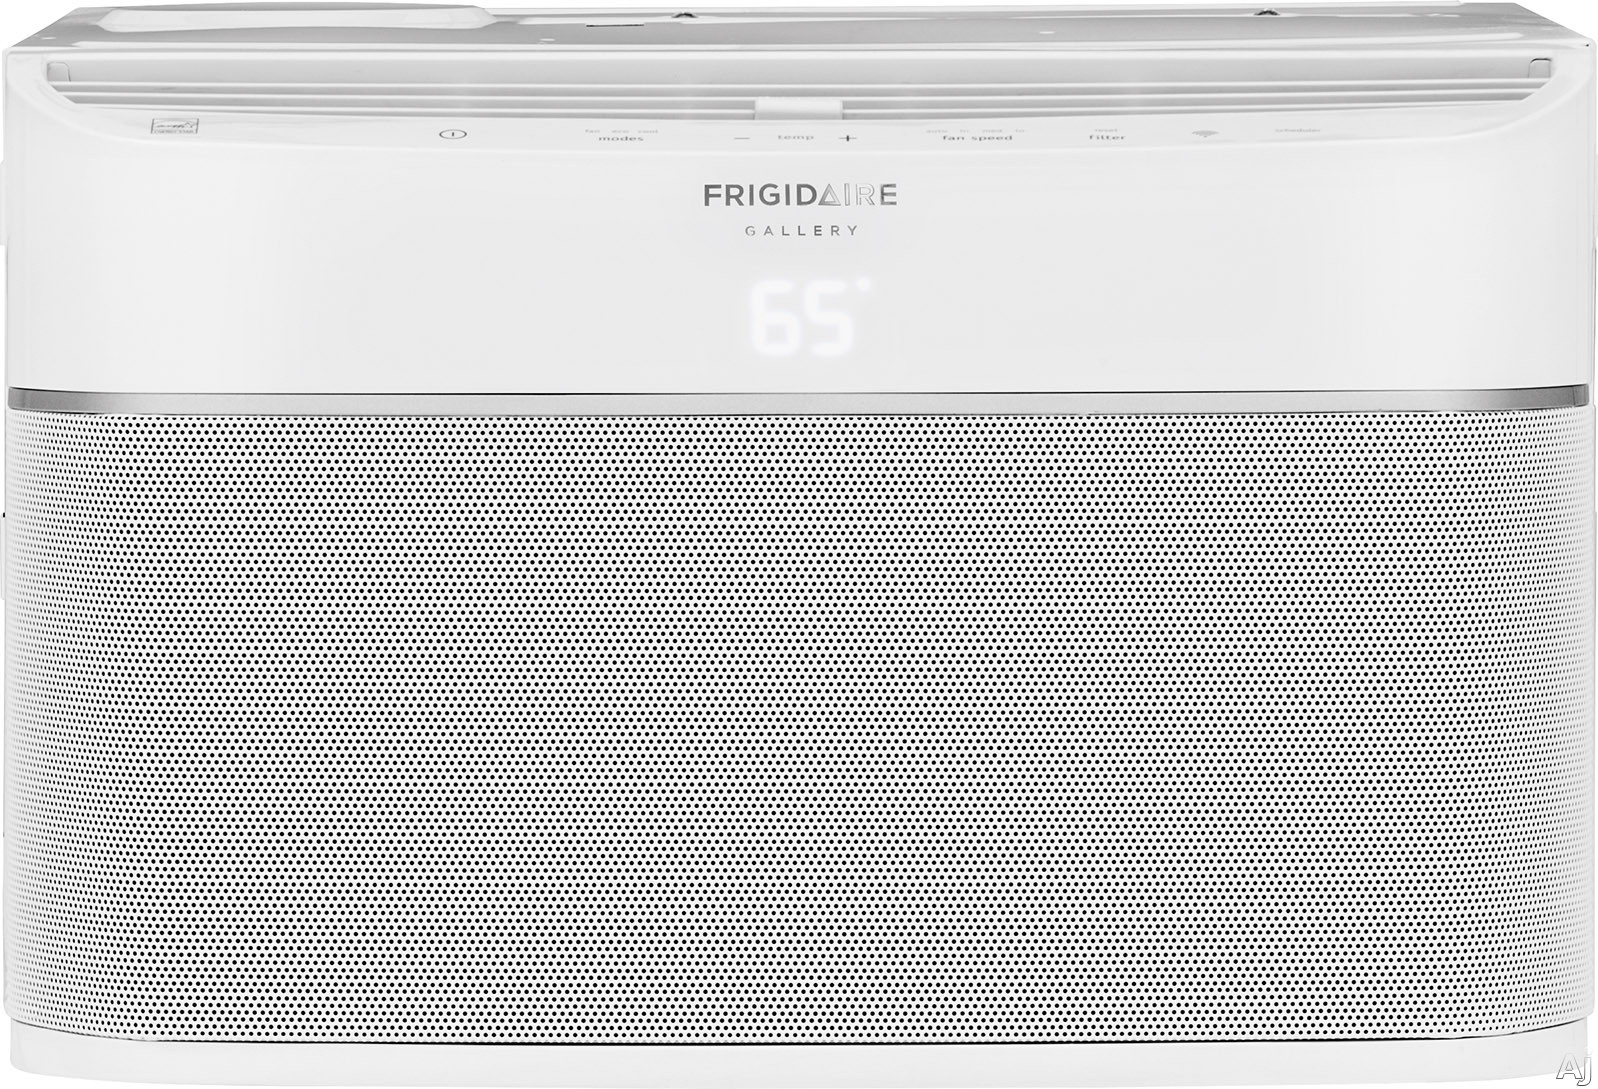 "Frigidaire Gallery Series FGRC0644U1 6000 BTU Room Air Conditioner with Effortlessâ""¢ Scheduling, Clean Air Ionizer, Effortlessâ""¢ Temperature Control, Smart App Compatible, Antibacterial Mesh"